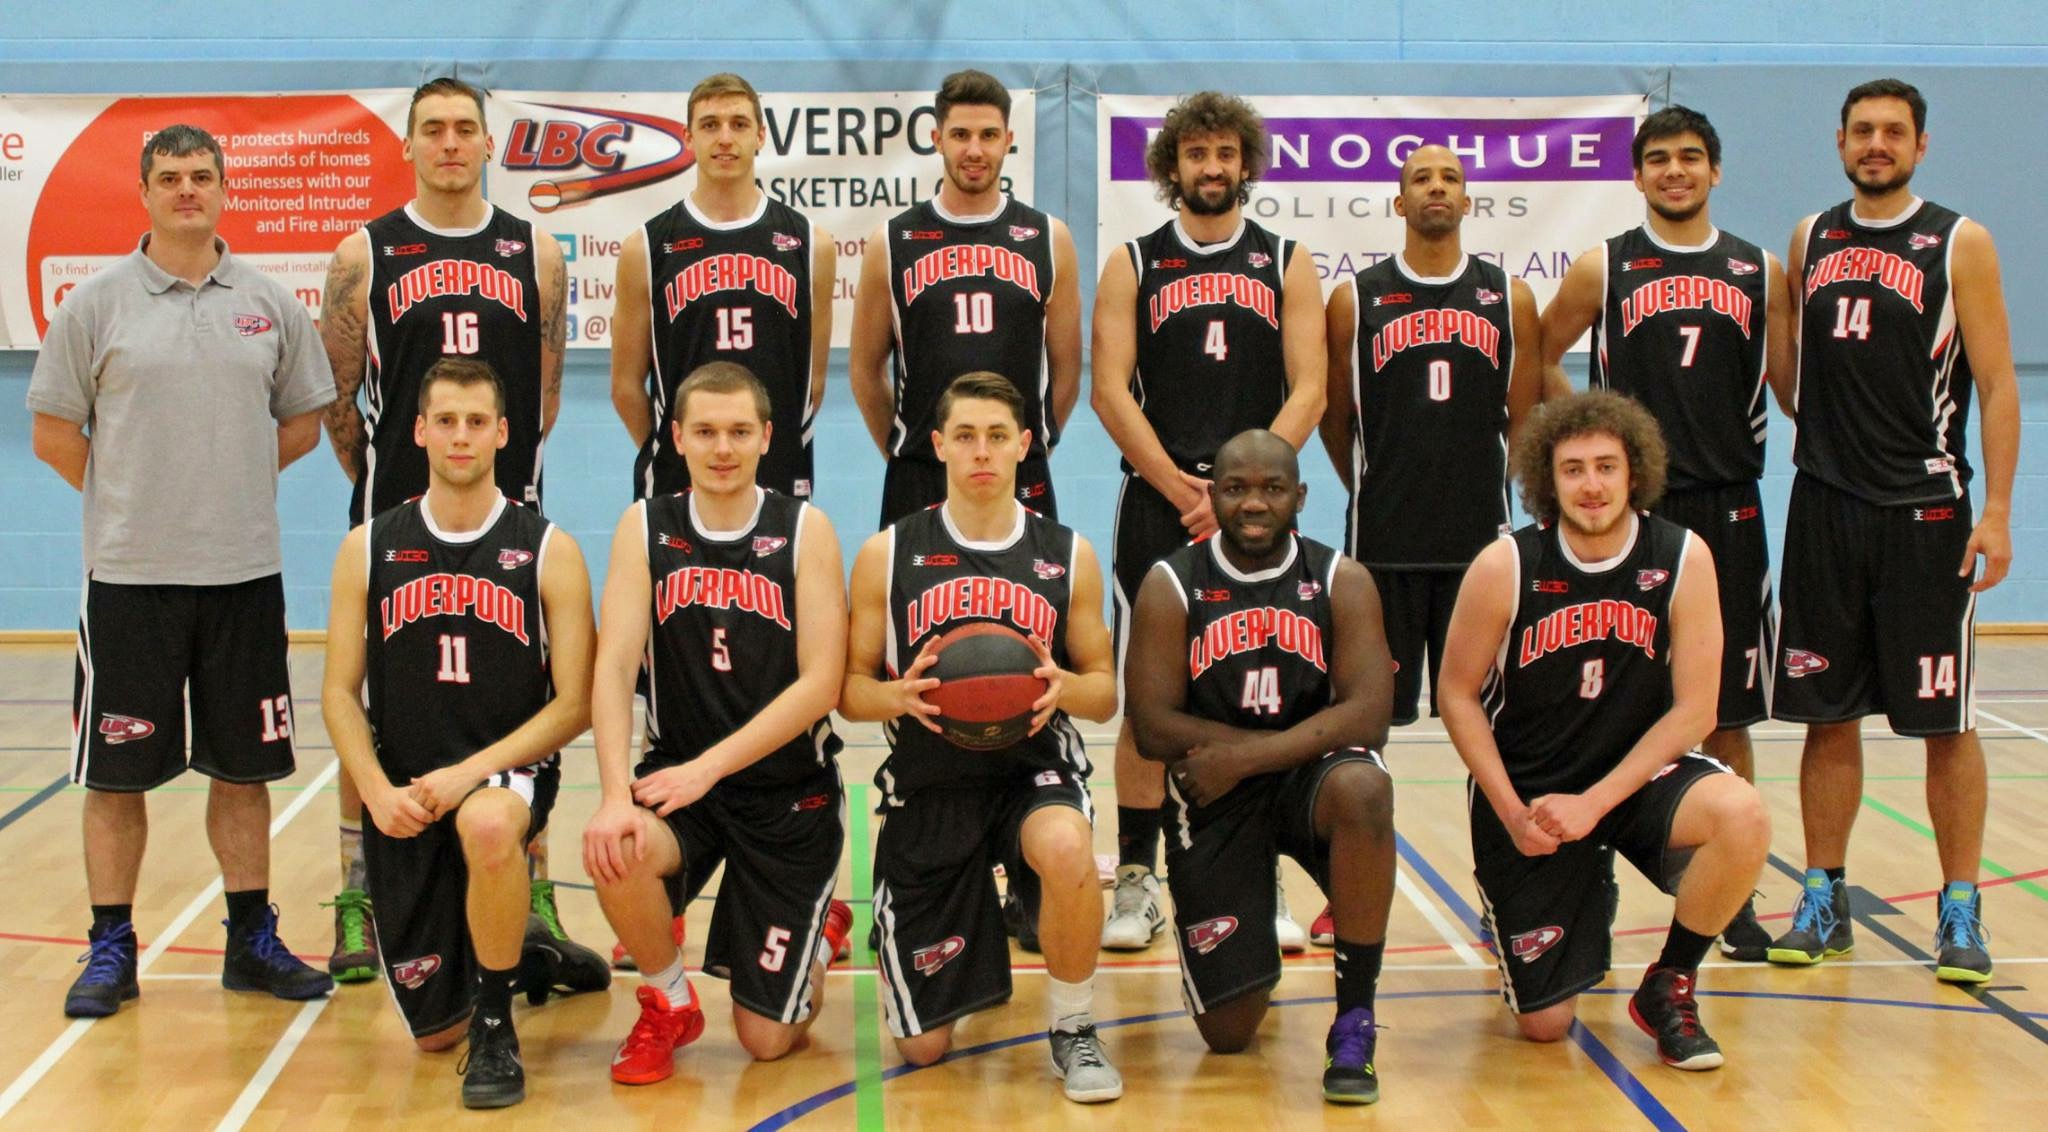 69c26b27b983ef Liverpool Basketball Club Men's Team in their new kit in front of the  Donoghue Solicitors sponsor sign.